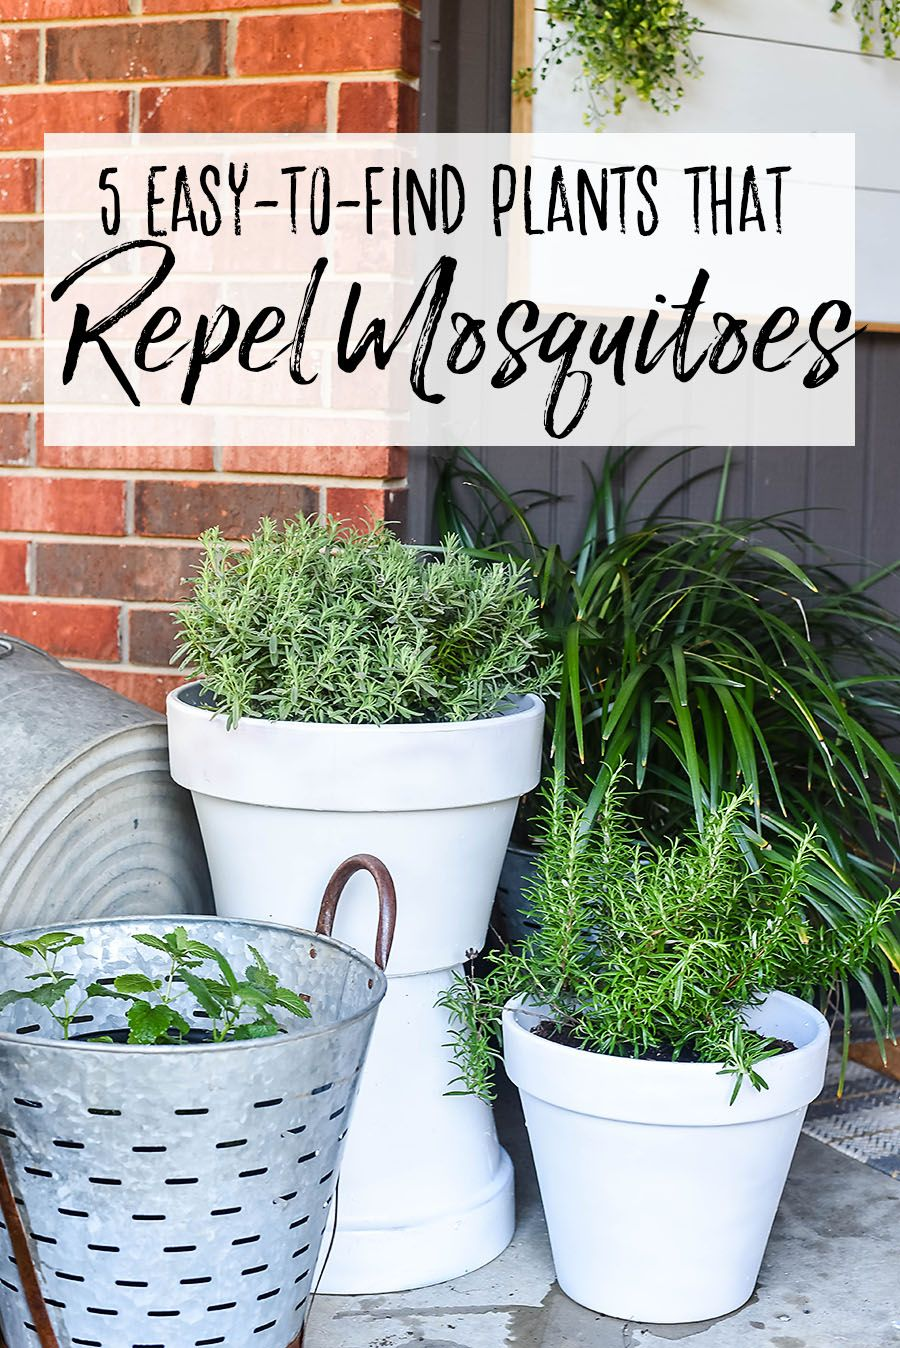 5 Plants That Repel Mosquitoes for Your Front Porch – Mosquito repelling plants